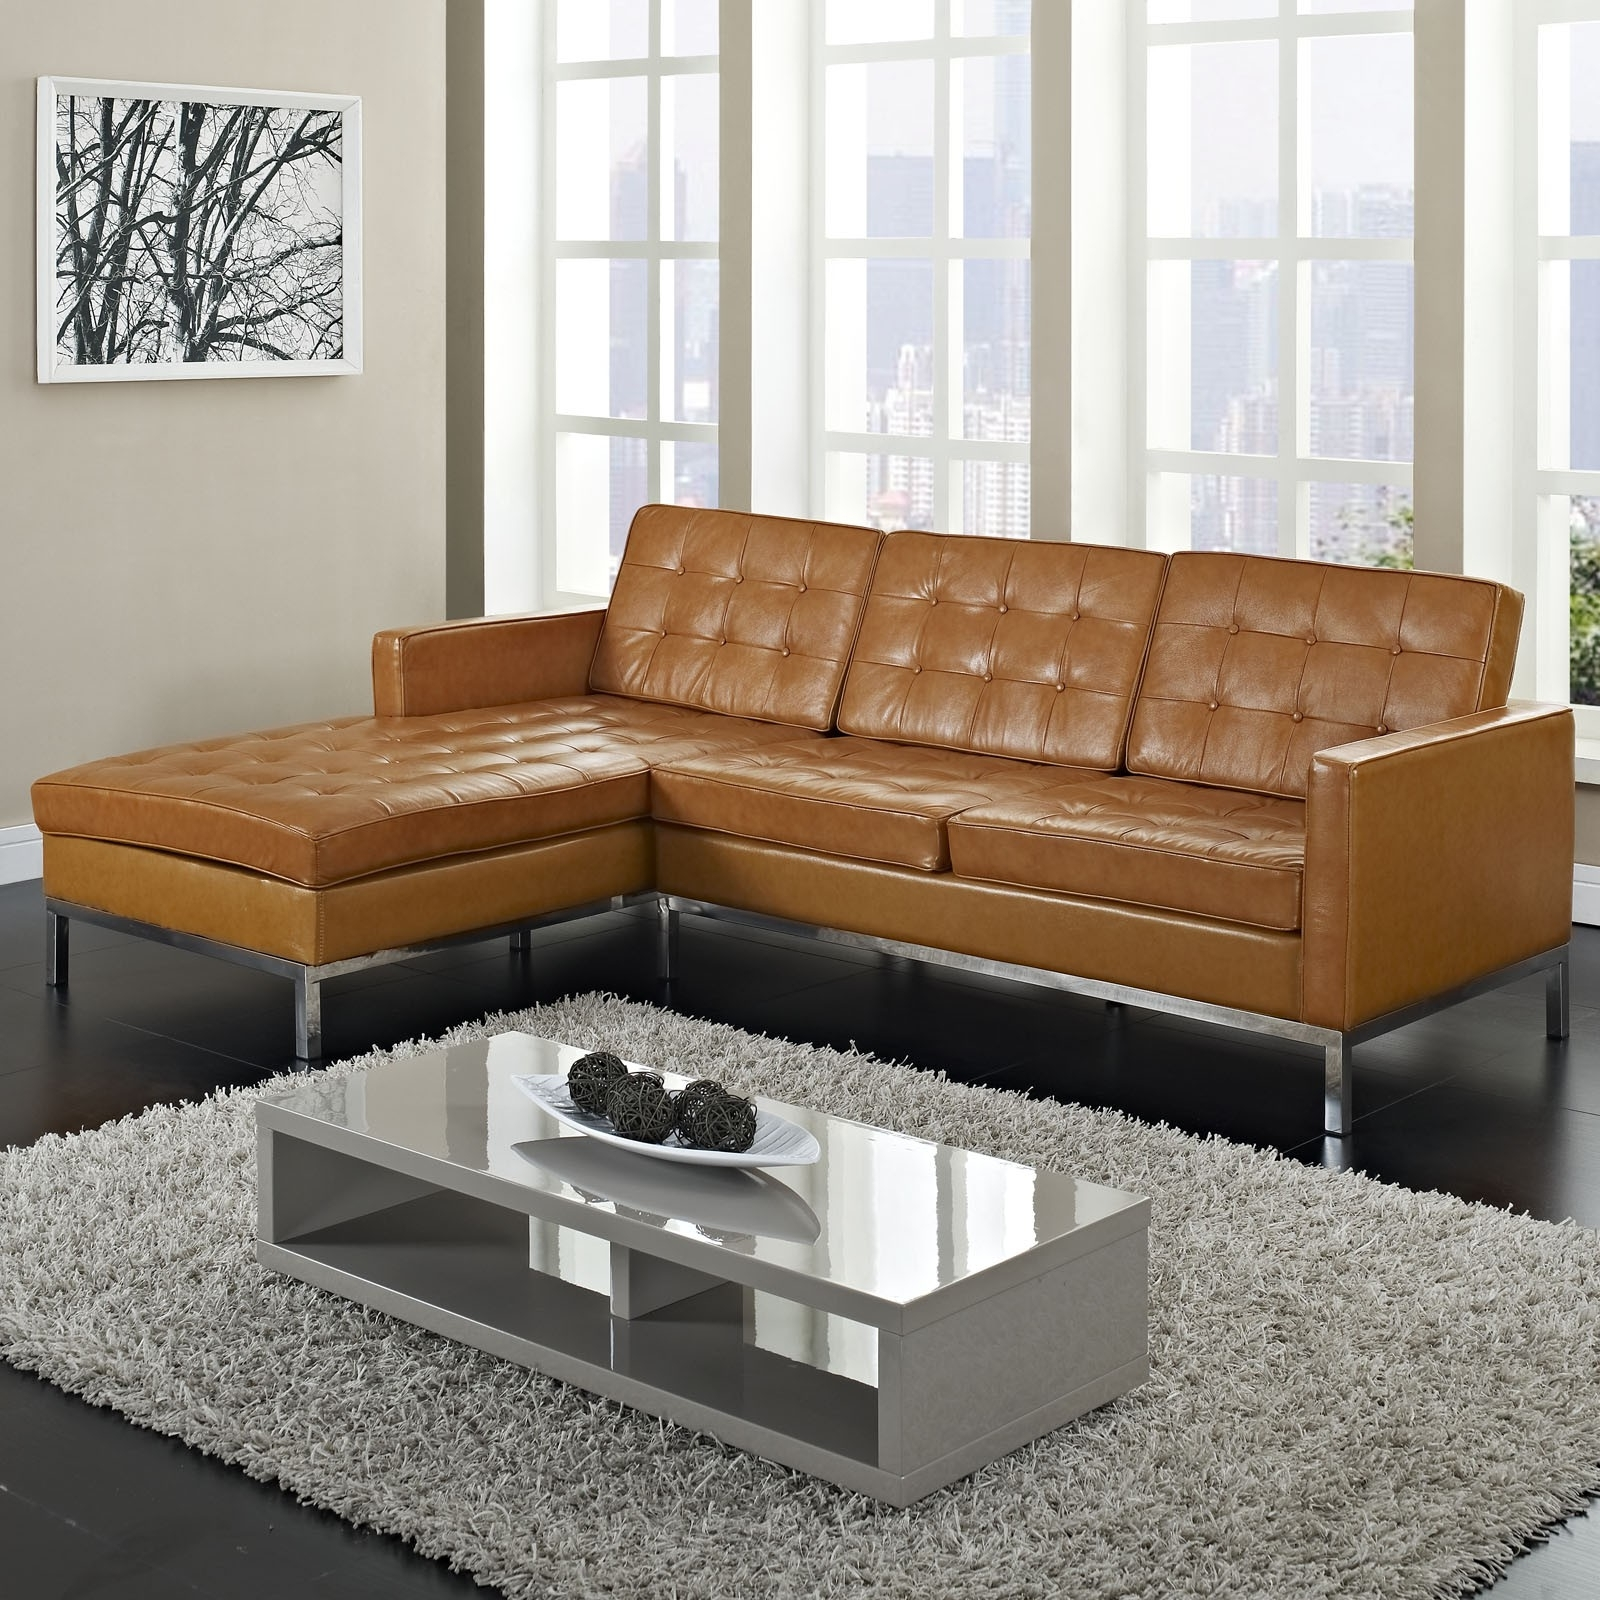 Furniture, Maximizing Small Living Room Spaces With 3 Piece Brown Inside Most Recent Sectional Sofas For Small Places (View 11 of 15)